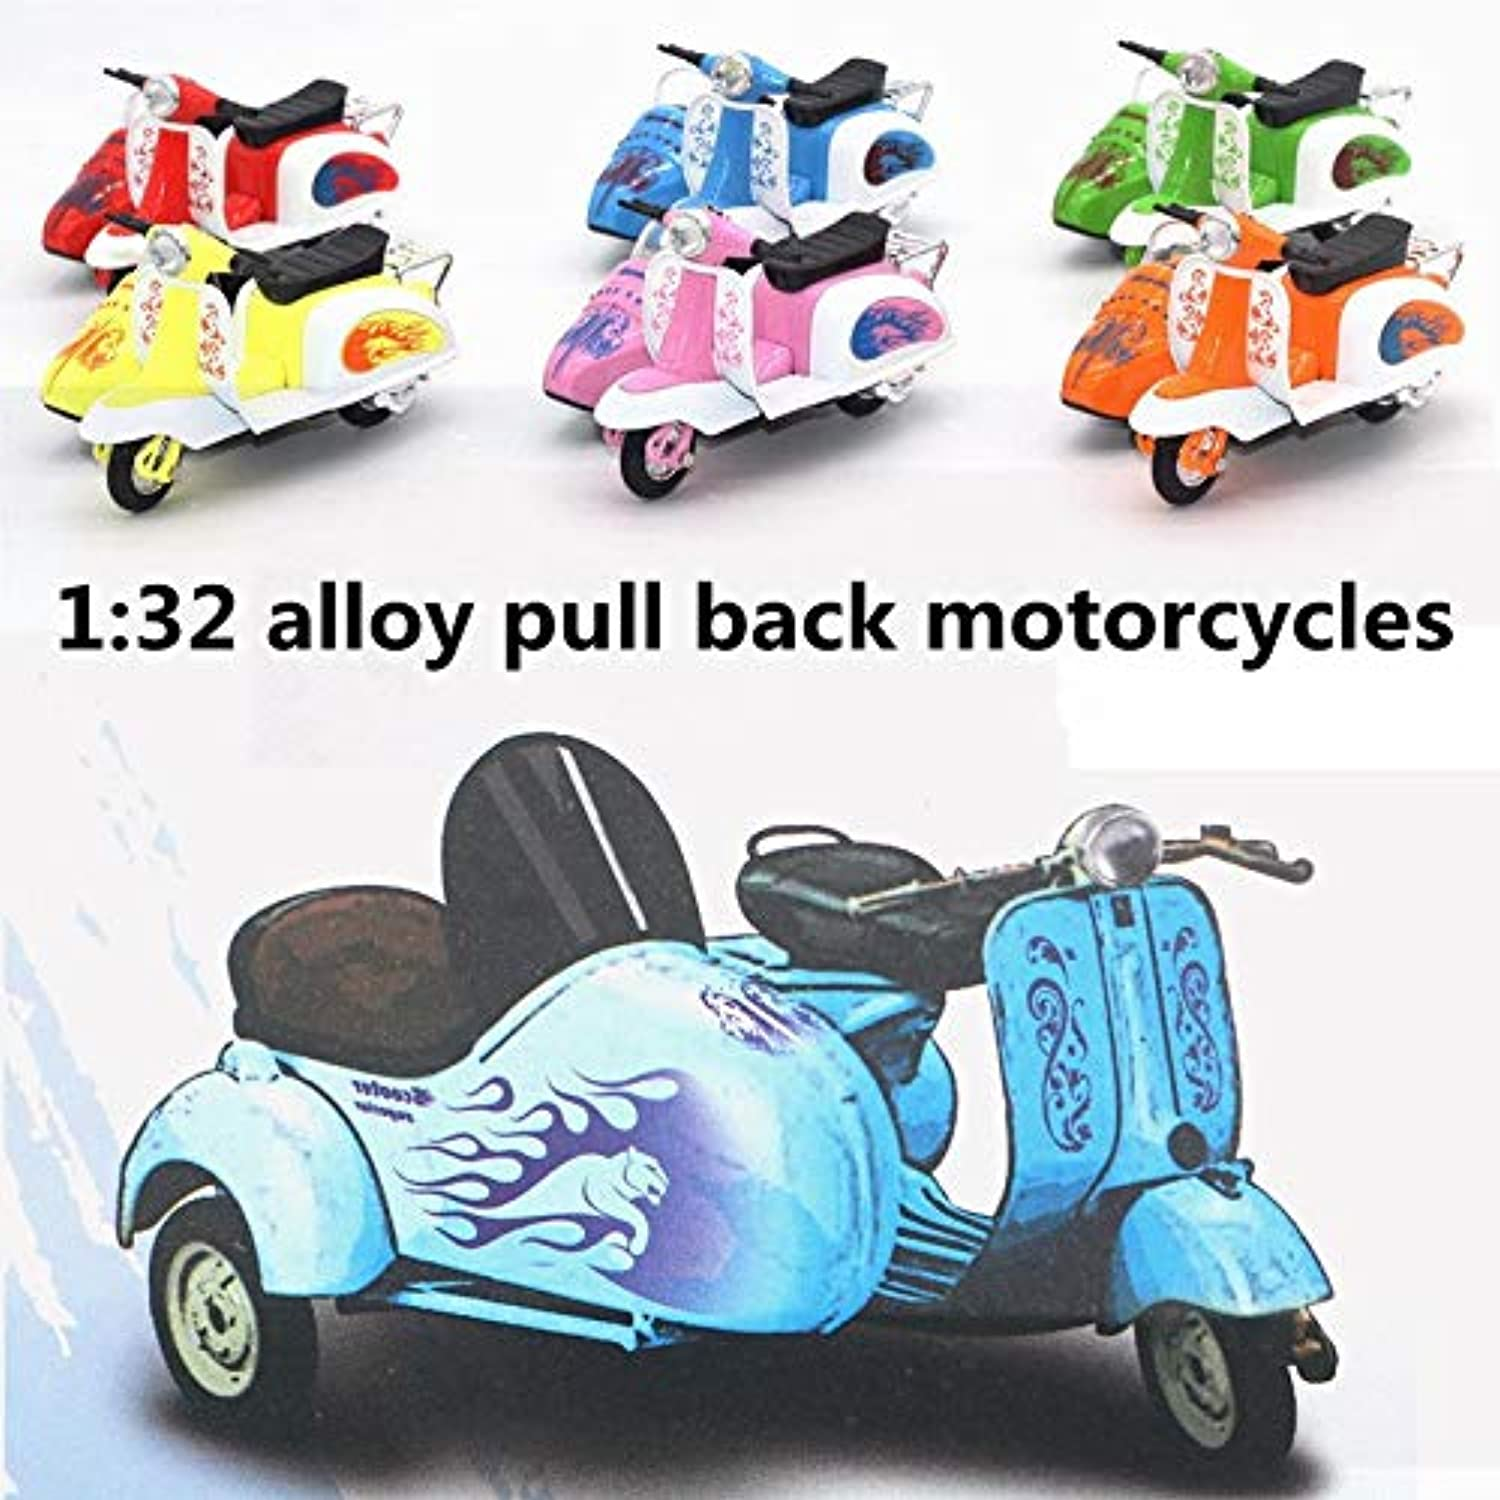 Generic 1 32 Alloy Pull Back Motorcycles,Retro Three  Wheeled Motorcycle Model,Metal diecasts,Toy Motorcycle,